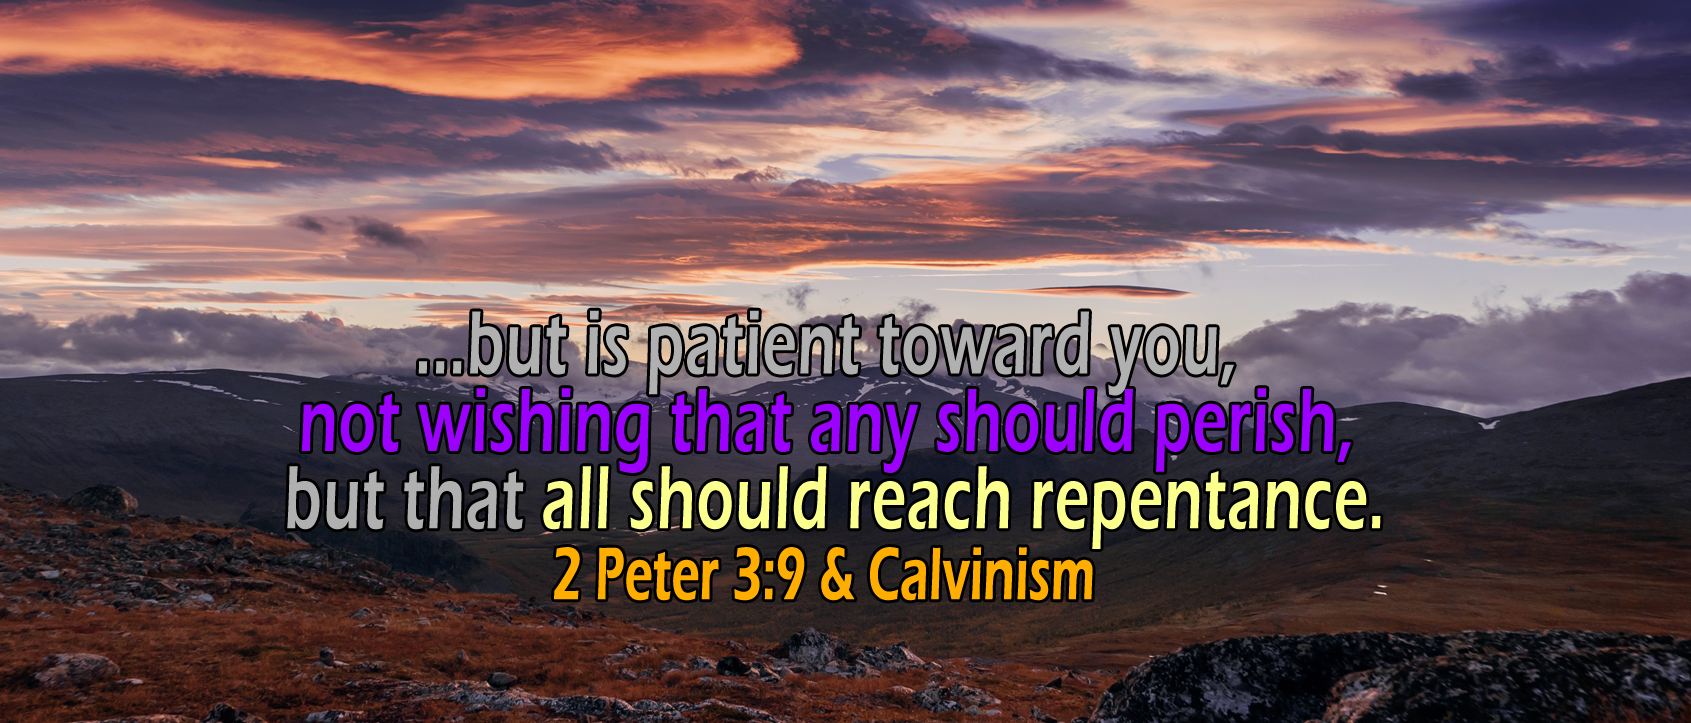 2 Peter 3:8-9, not wishing that any should perish